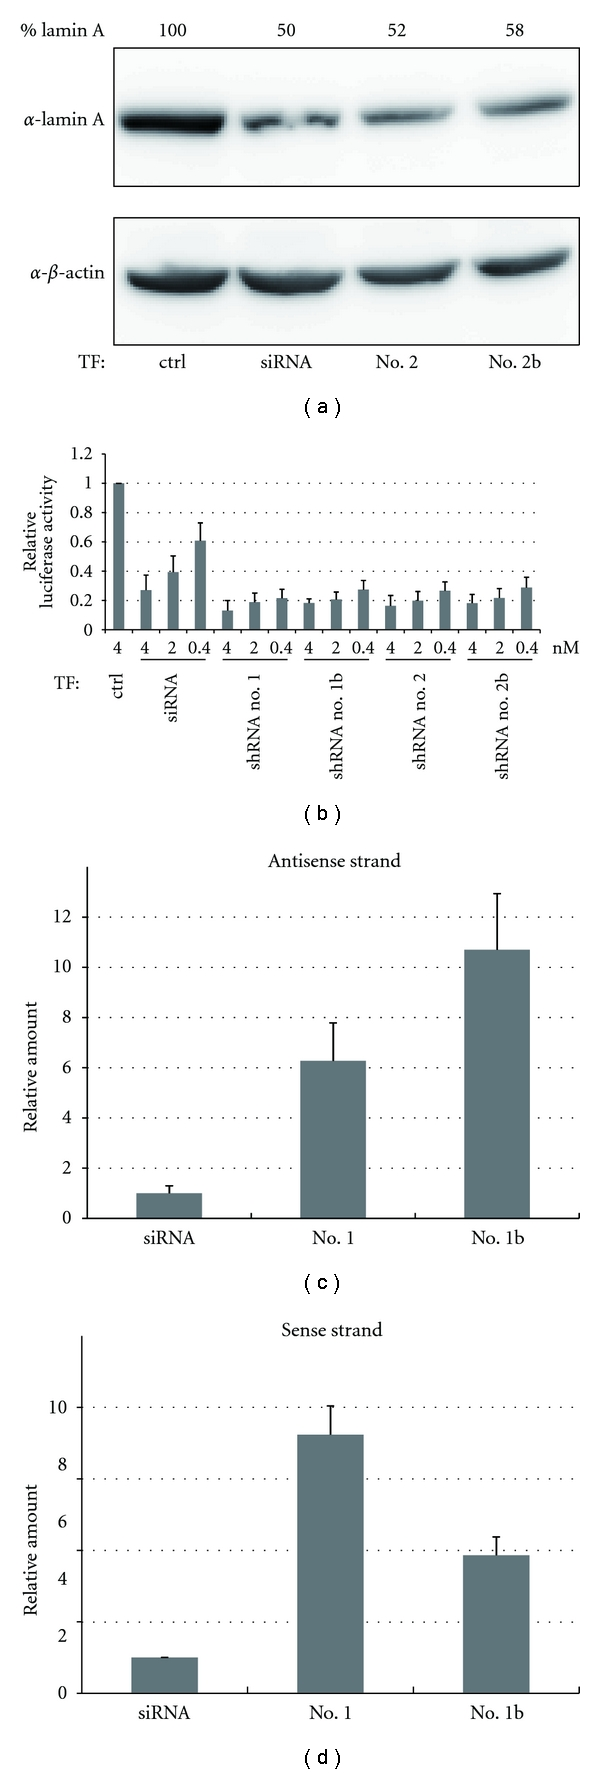 Comparison of the RNAi activity between synthetic shRNAs and their corresponding siRNAs. (a) The RNAi activity of siRNAs and shRNAs was analyzed by immunoblotting. (b) The RNAi activity was monitored by a reporter assay system. The luciferase activity ratio for the control siRNA (ctrl) was set as 1. (c), (d) The incorporation of transfected small RNA into the RISC was analyzed by qRT-PCR. Data were normalized against the amount of miR-21 in the RISC. The amount of siRNA incorporated was set as 1. Each graph point in (b), (c), and (d) represents the average (with s.d.) of three independent experiments.